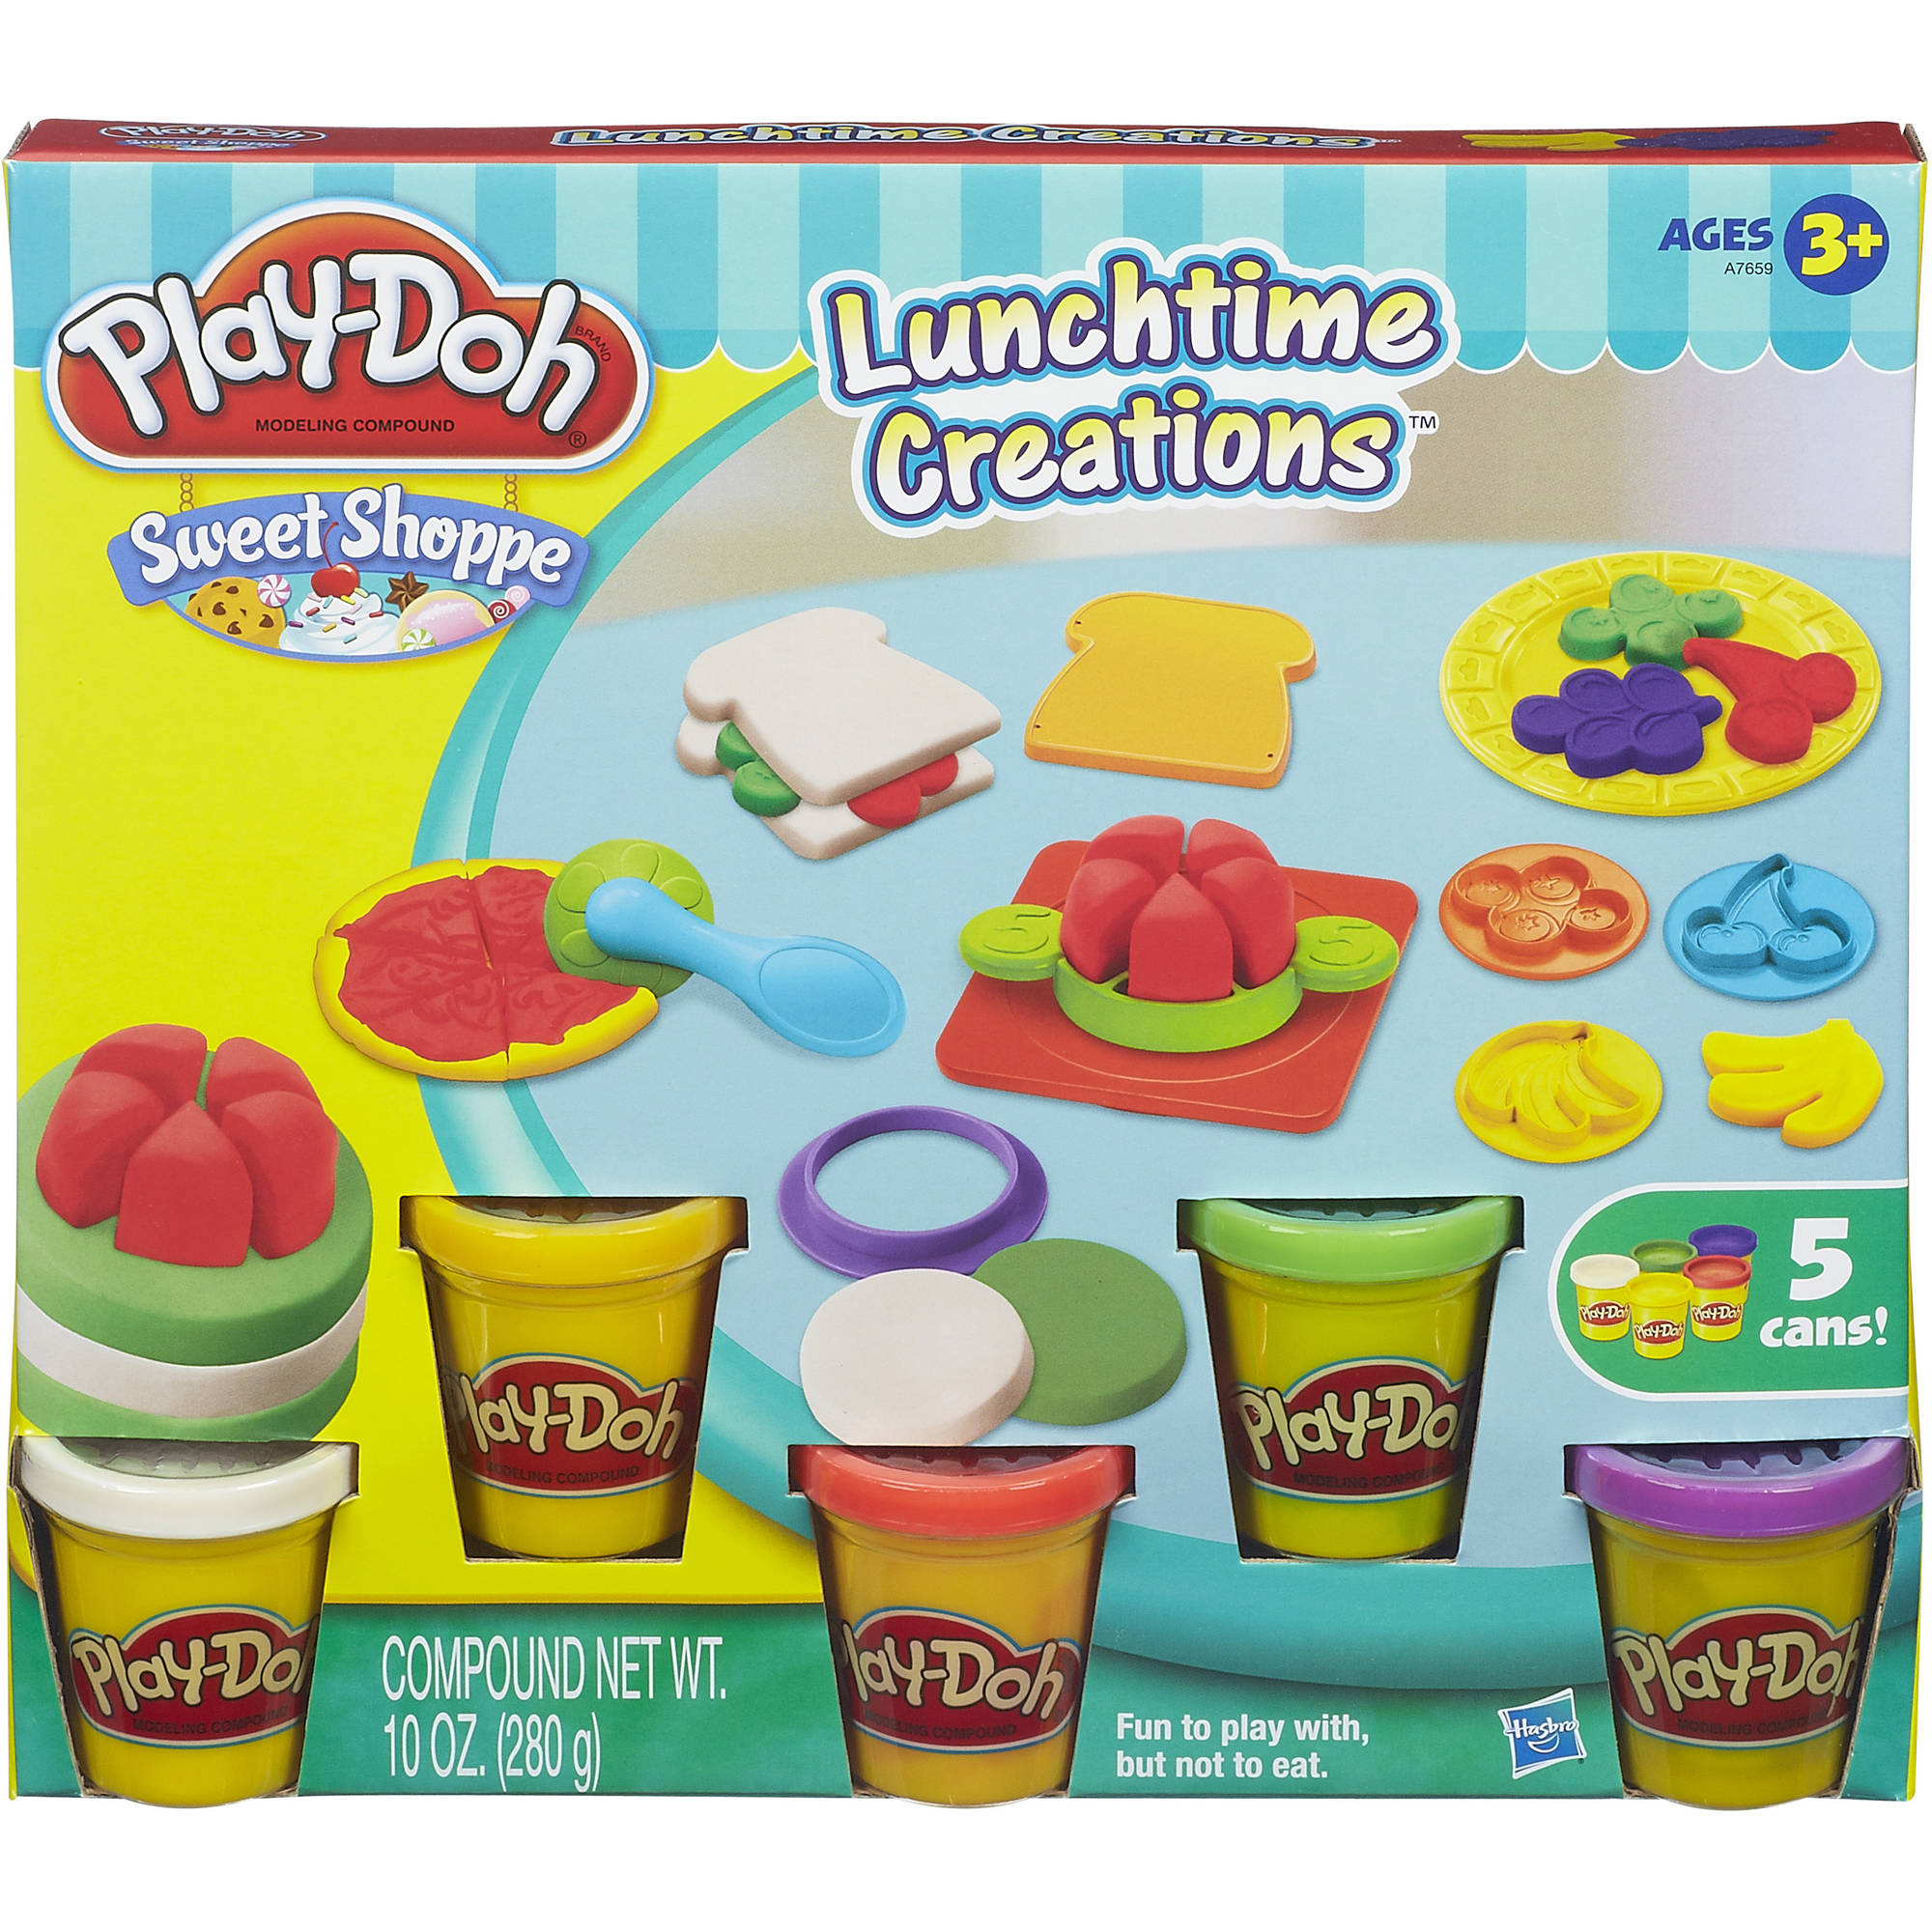 Play-Doh Sweet Shoppe Lunchtime Creations Food Set